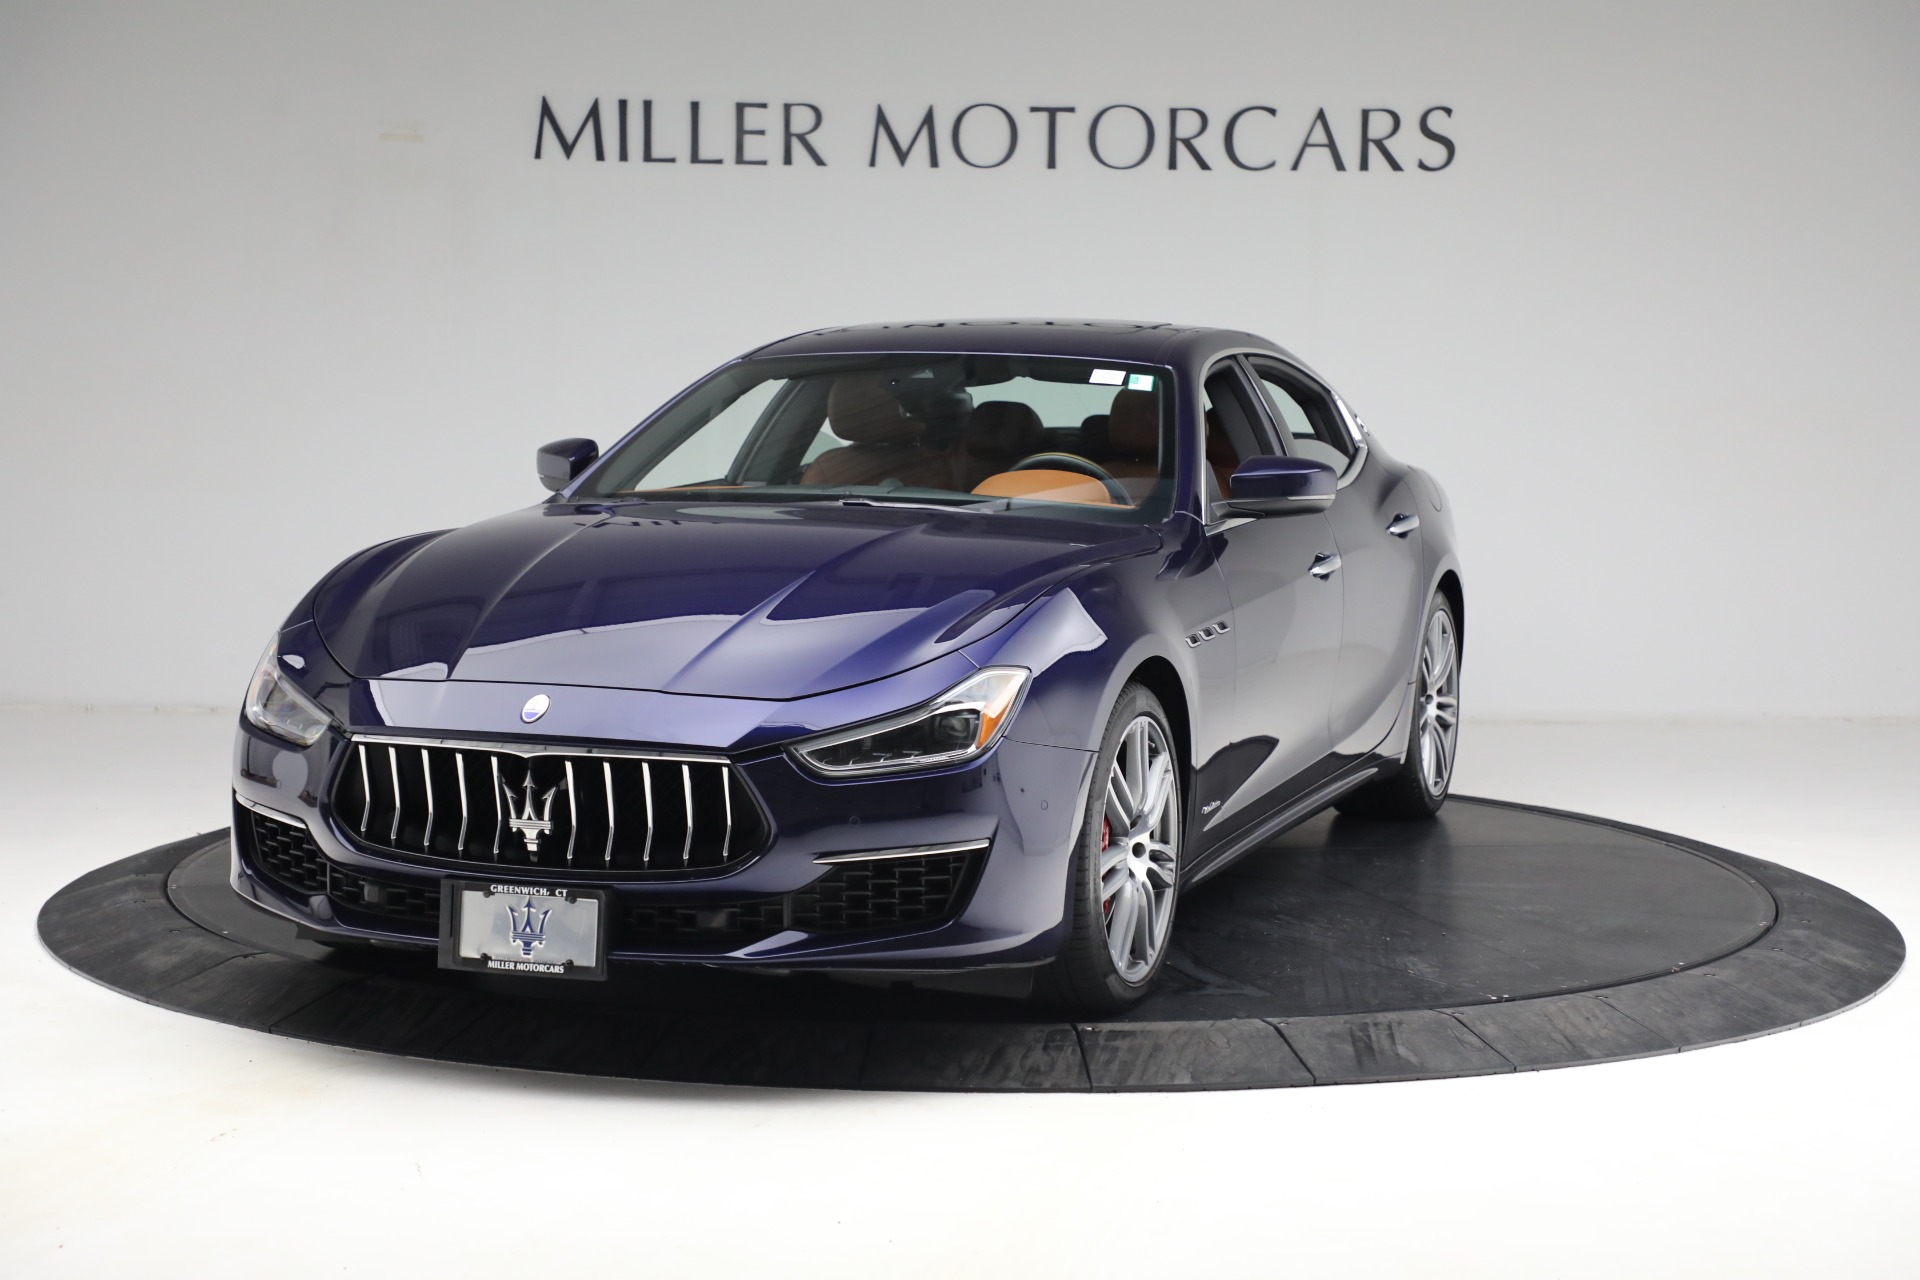 New 2018 Maserati Ghibli S Q4 GranLusso for sale Sold at Alfa Romeo of Westport in Westport CT 06880 1